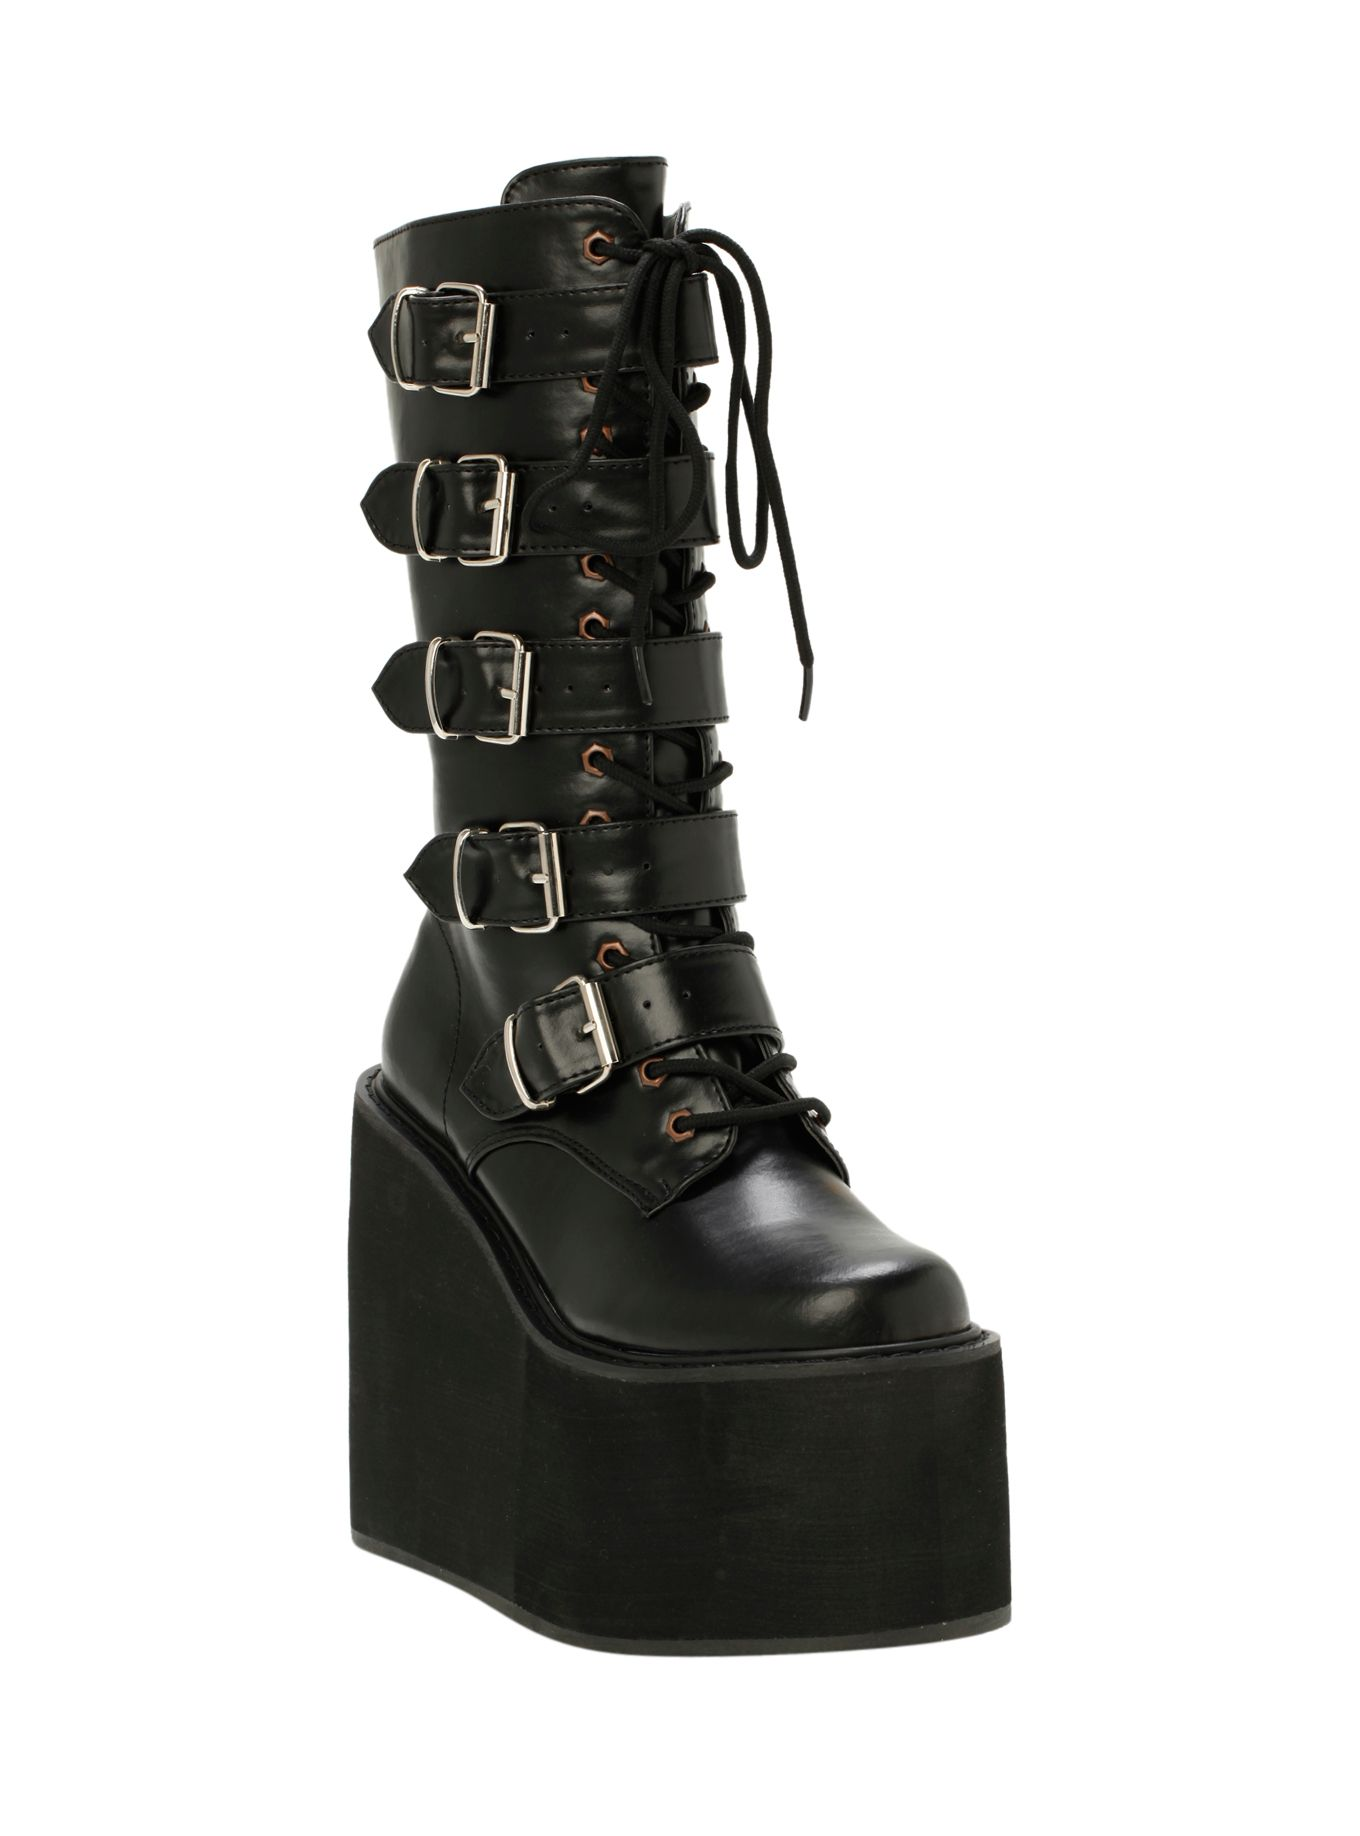 7e96bde8a273 Demonia By Pleaser Black PU Buckle Boots